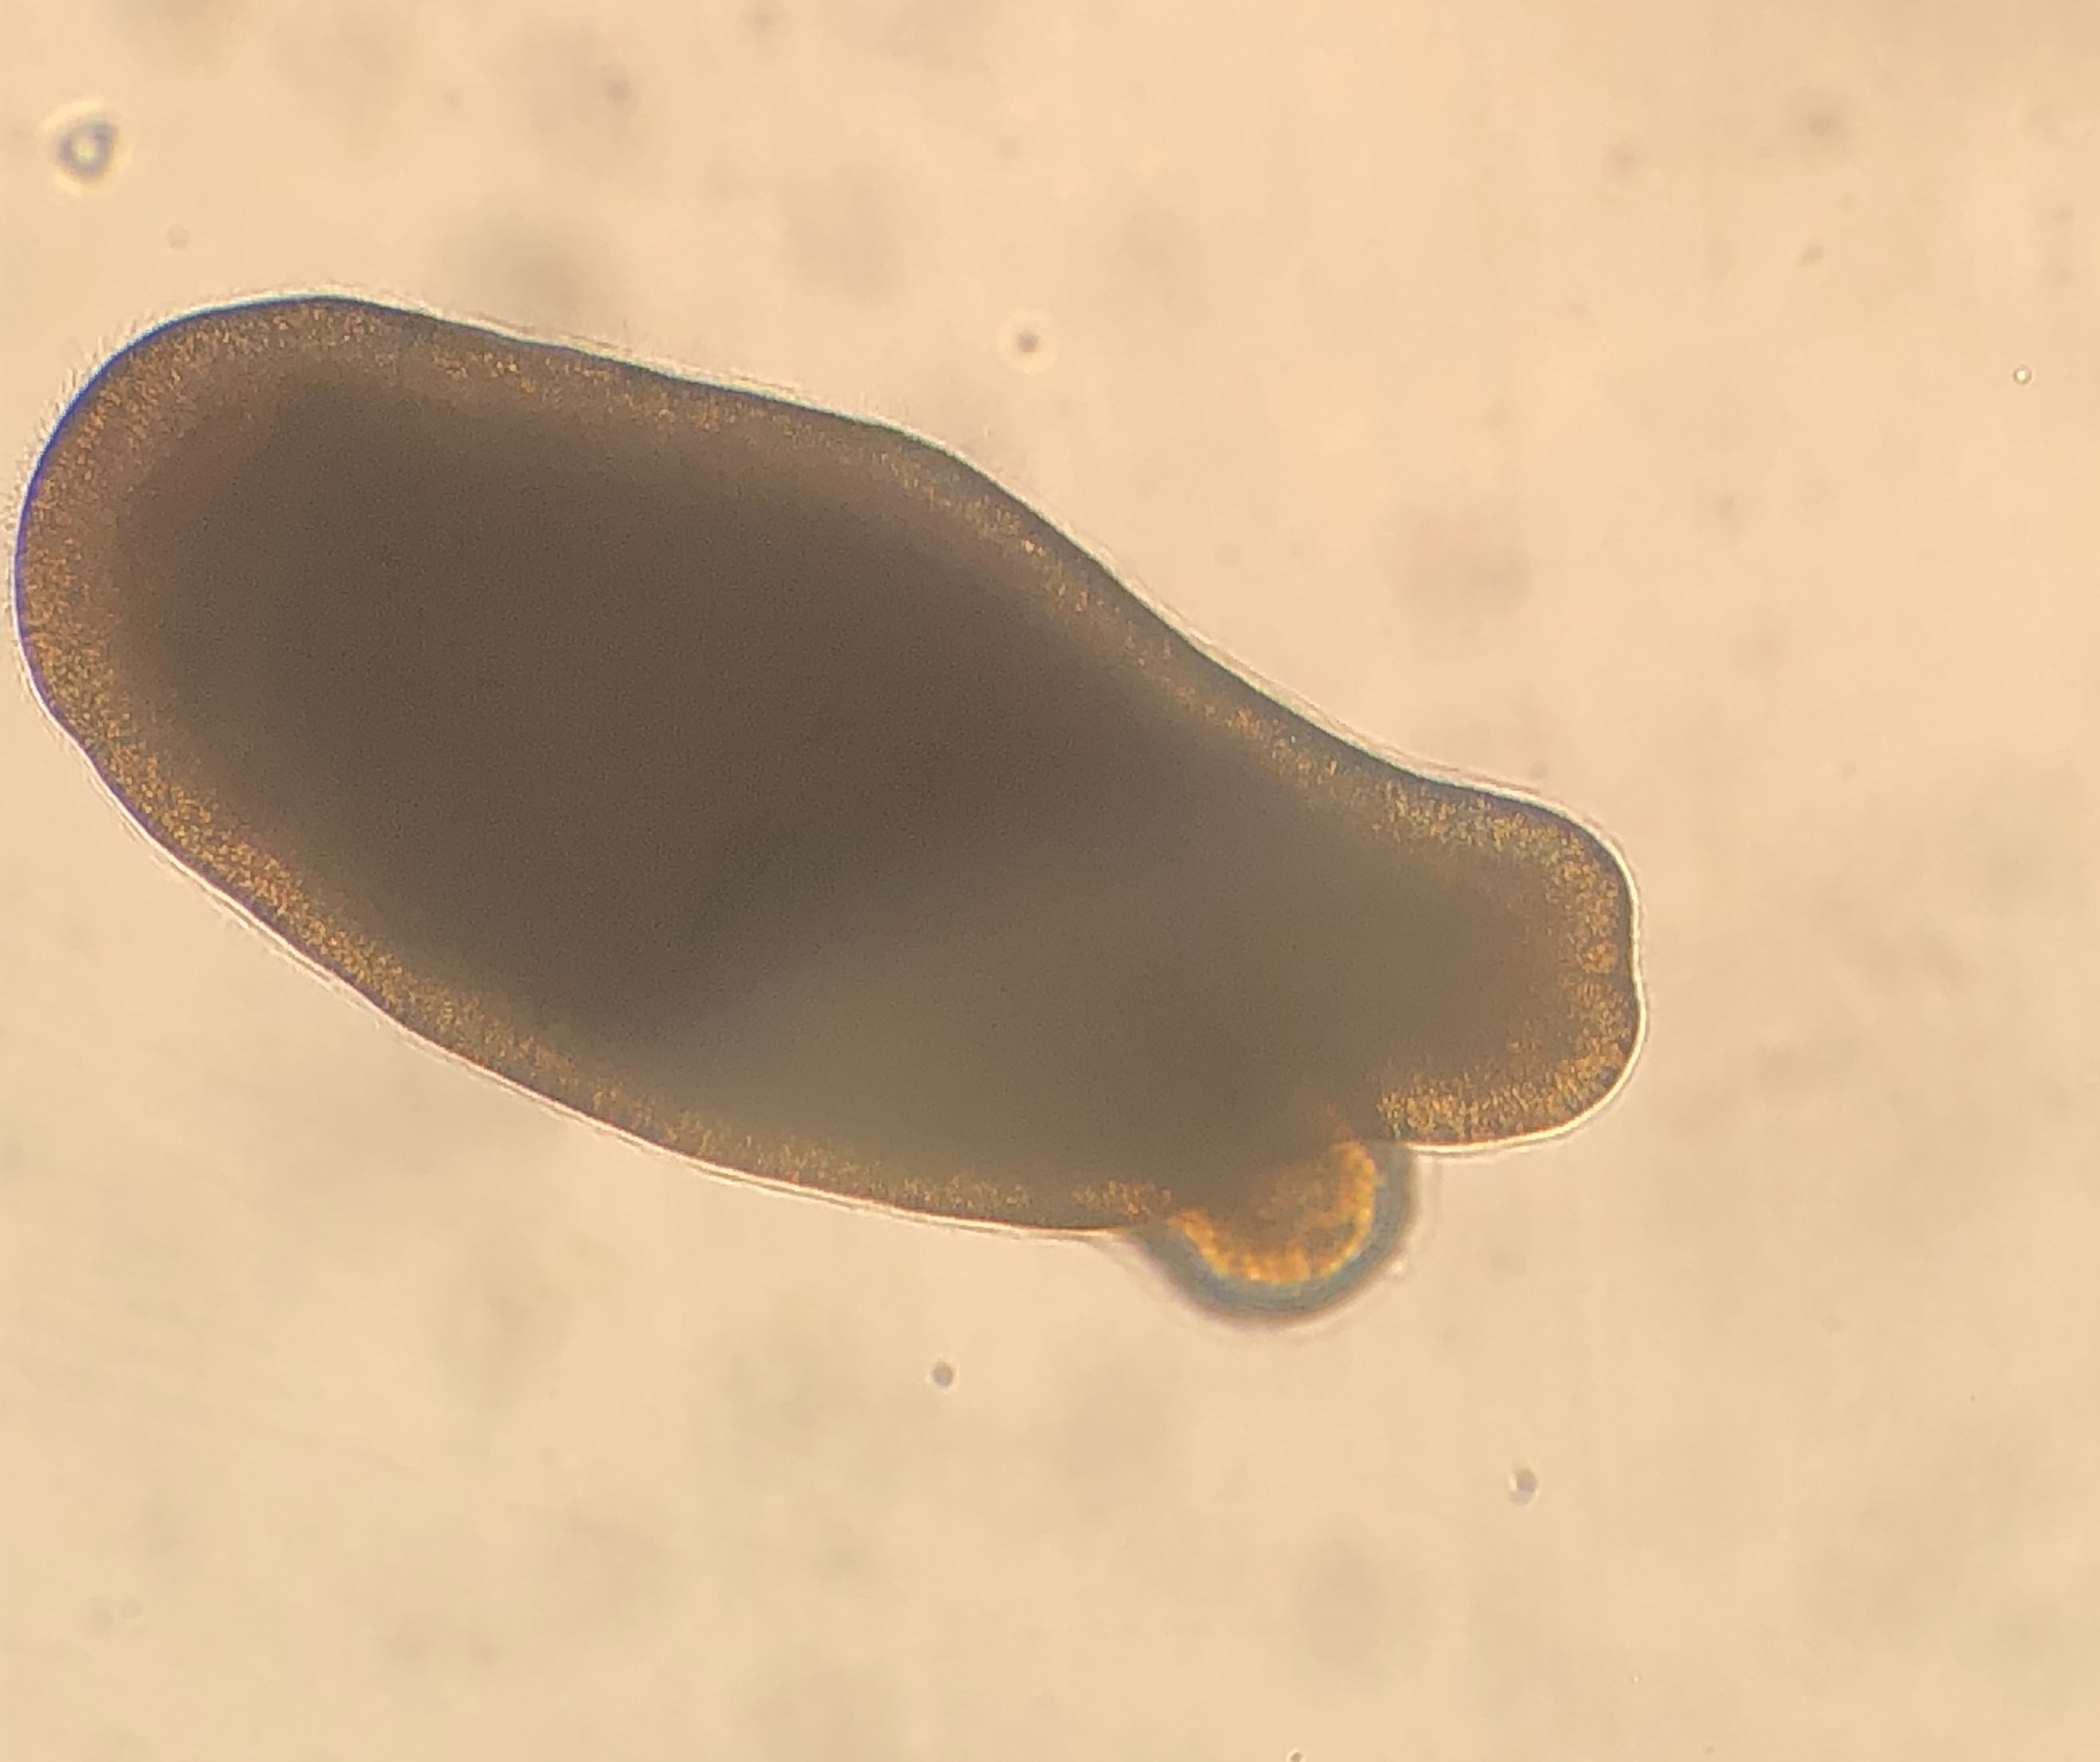 A 3-day-old, swimming  Diploria labyrinthiformis  larva under a microscope.